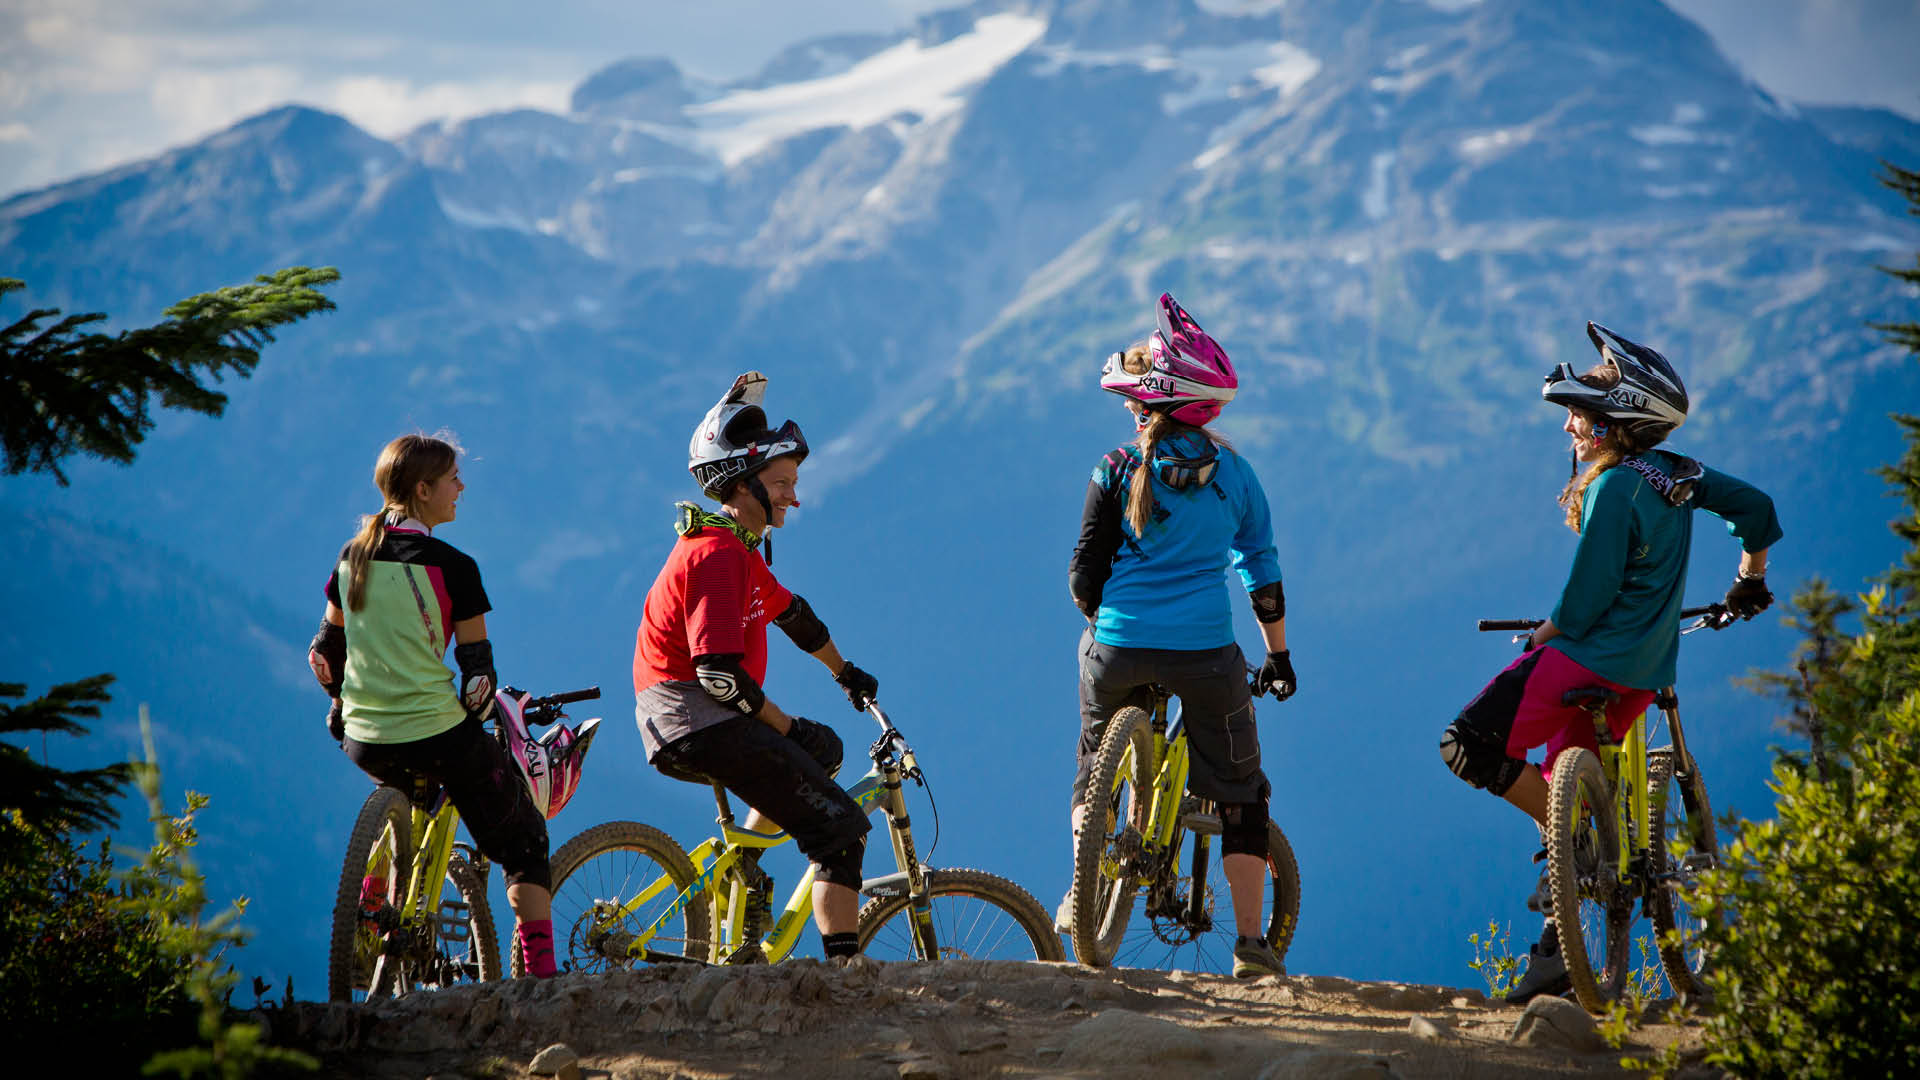 Four mountain bikers, on a hill